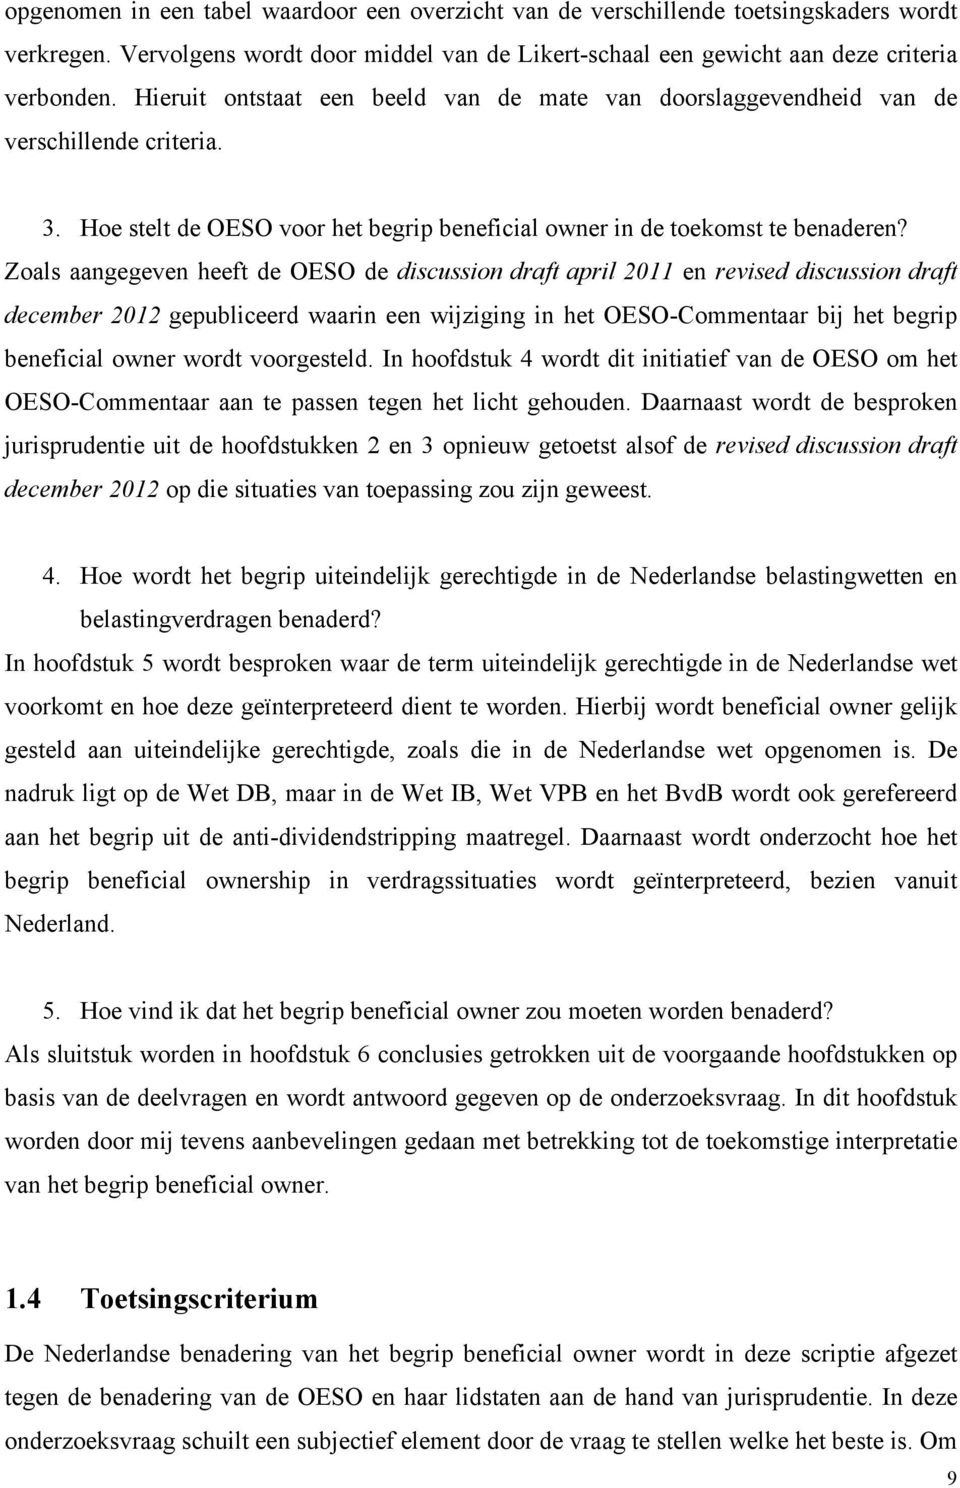 Zoals aangegeven heeft de OESO de discussion draft april 2011 en revised discussion draft december 2012 gepubliceerd waarin een wijziging in het OESO-Commentaar bij het begrip beneficial owner wordt